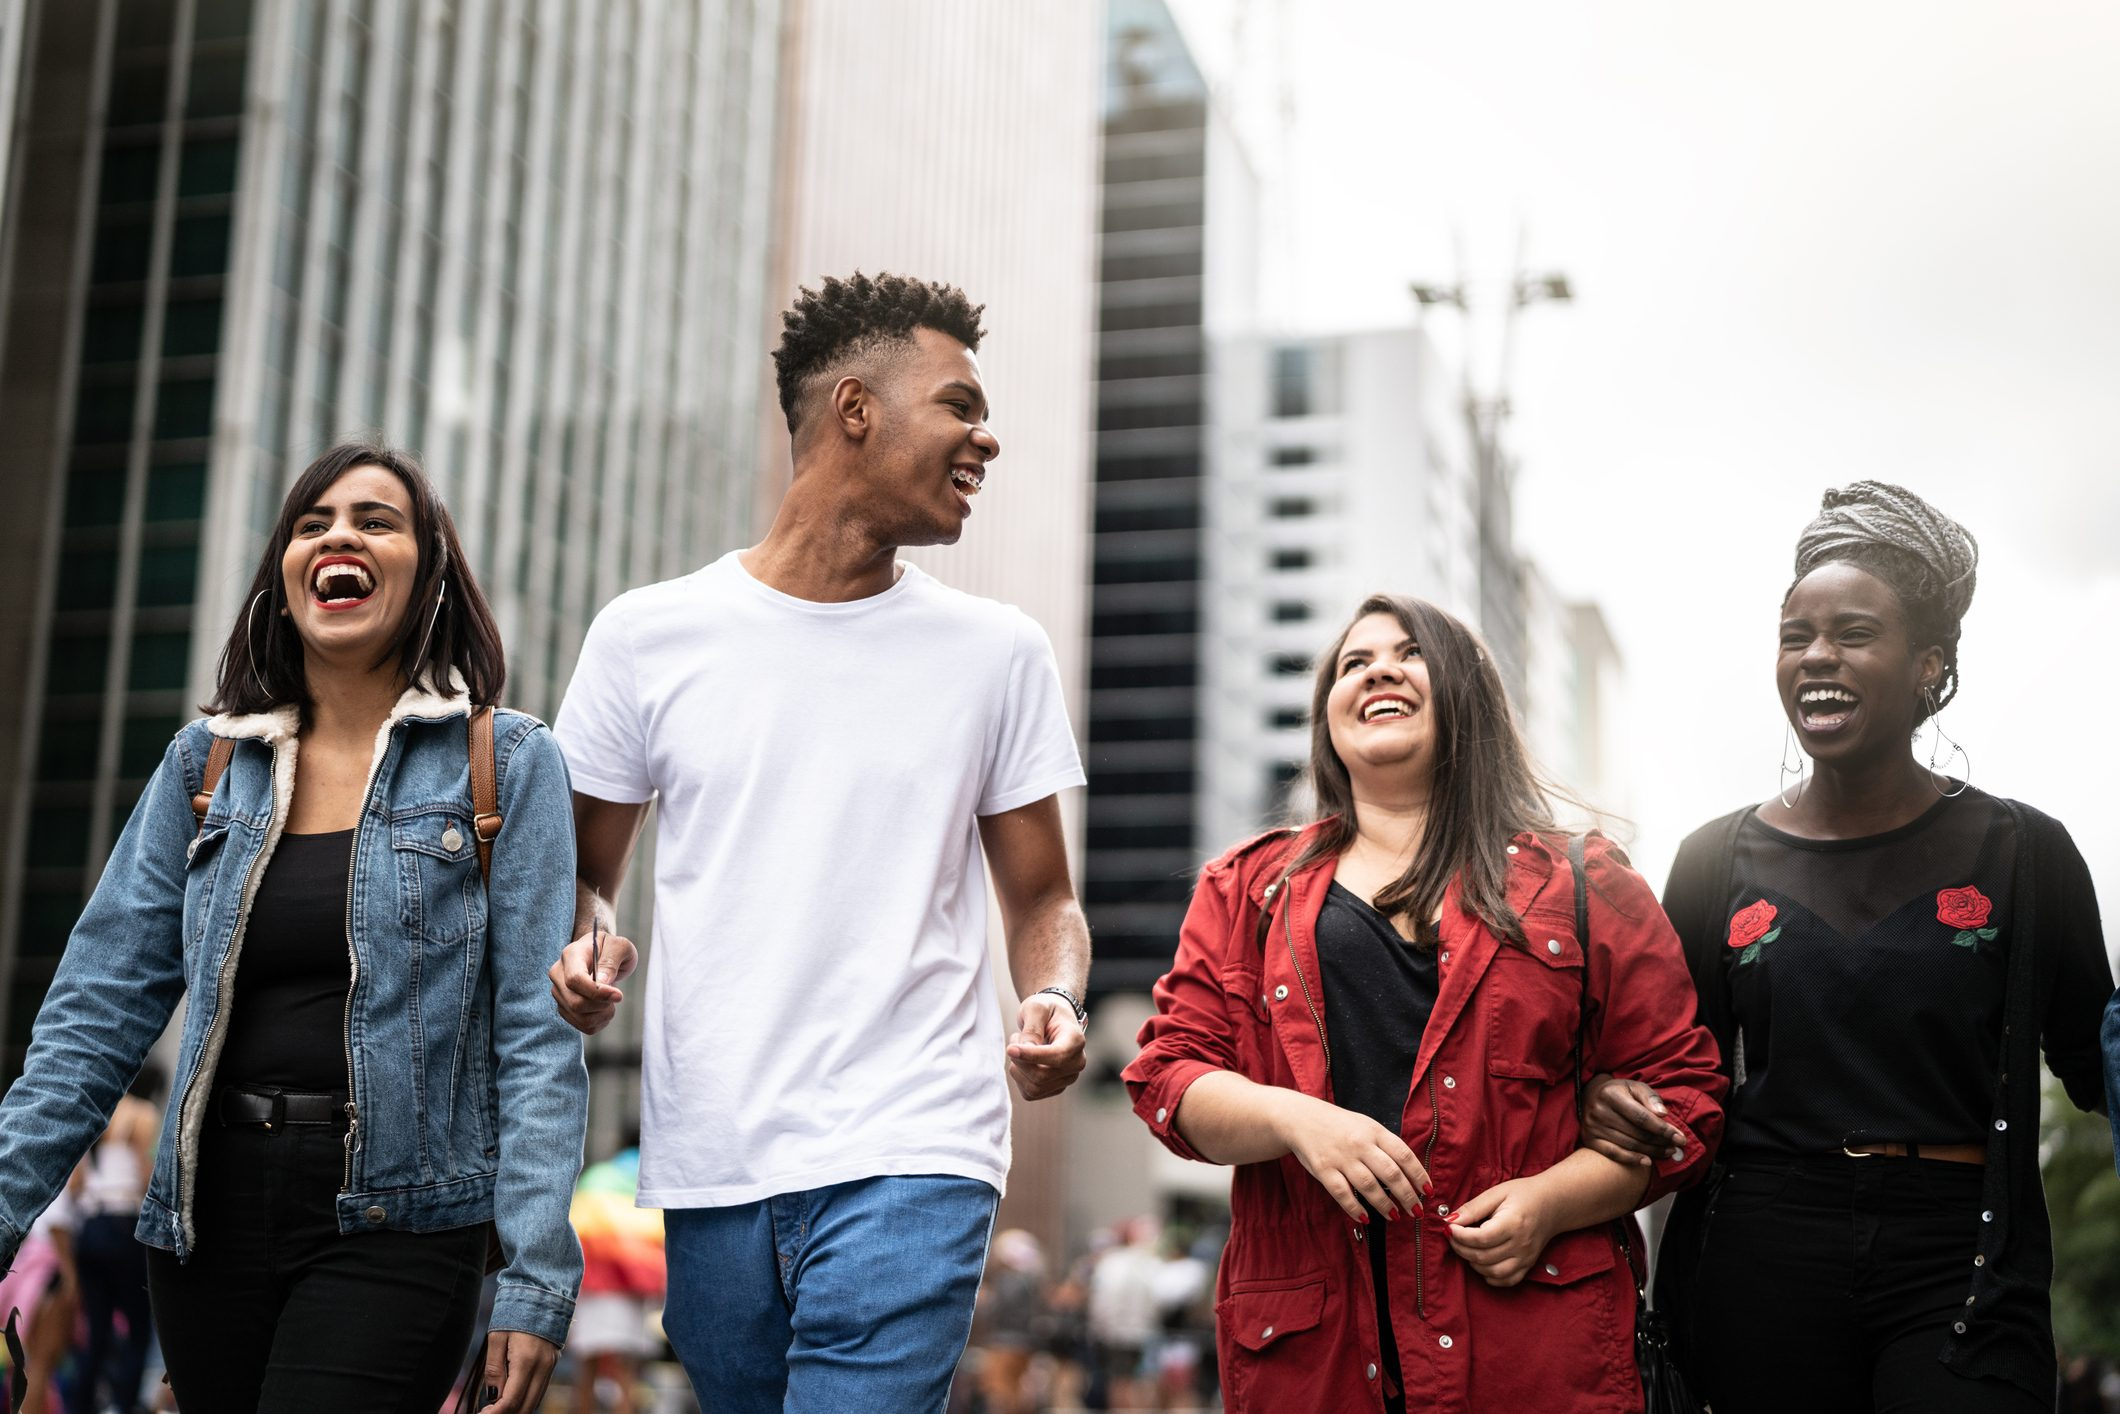 Authentic Group of Diverse Friends Having Fun in the City